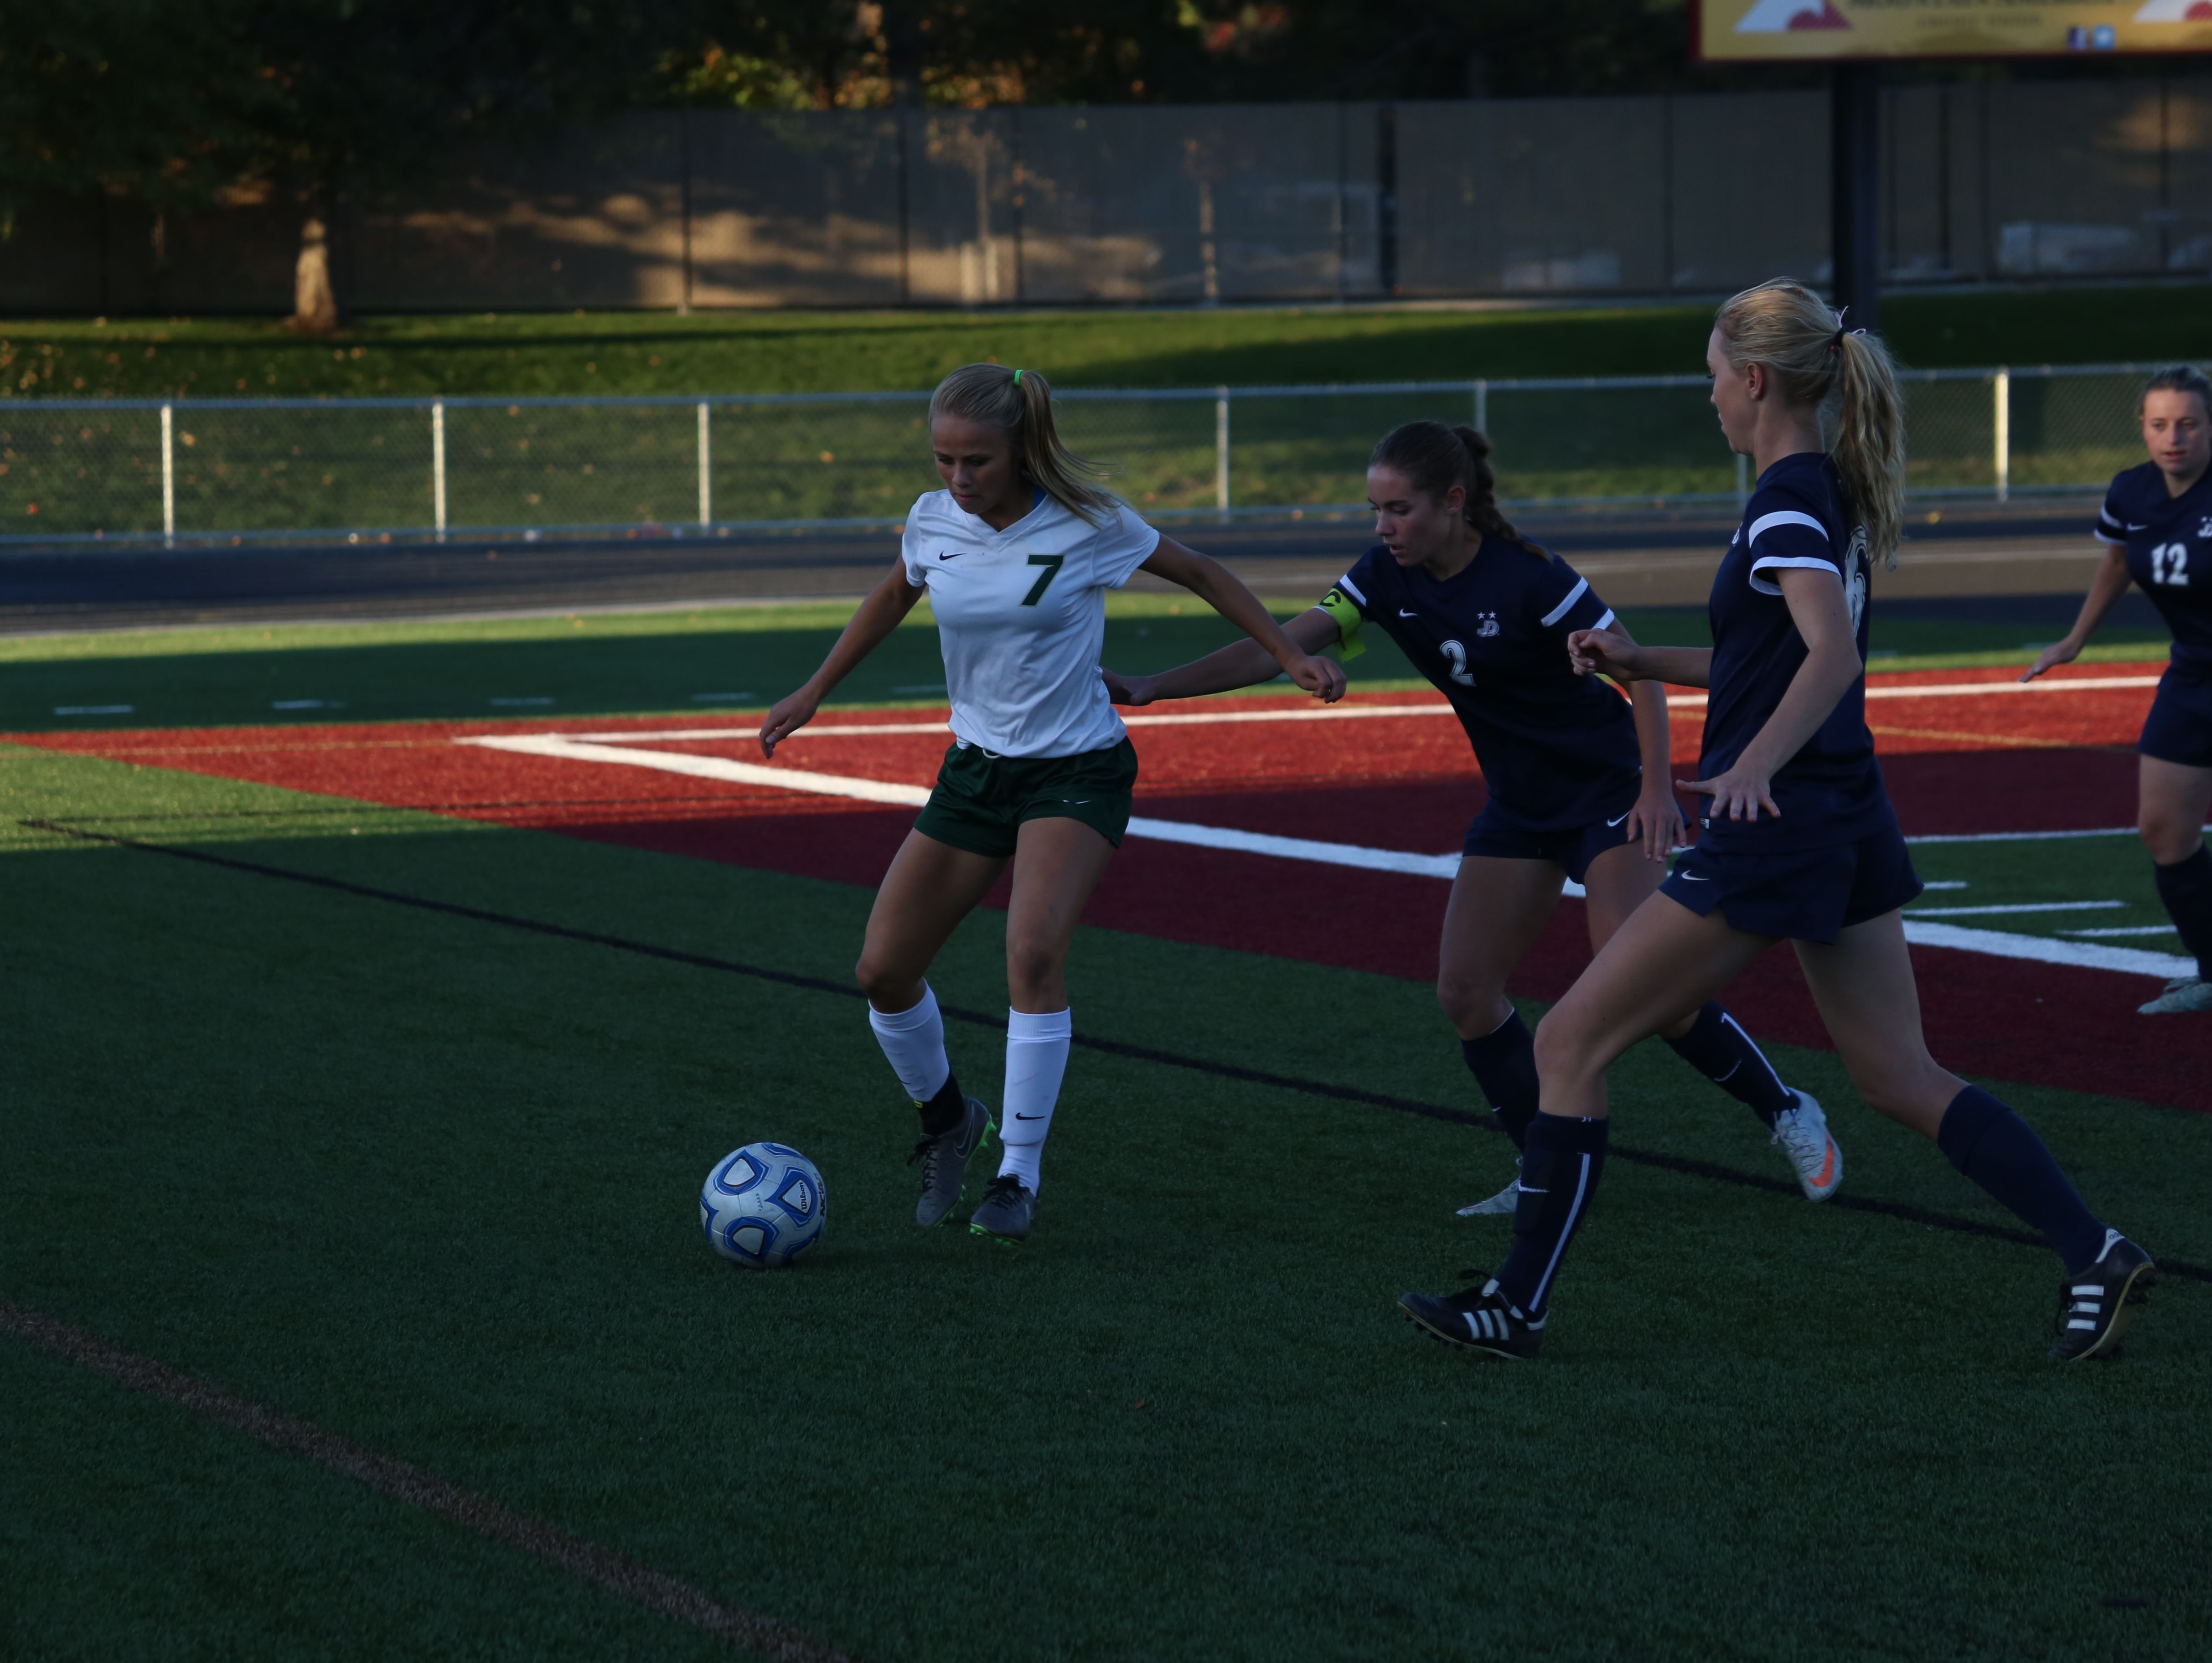 Juan Diego scored five unanswered goals to defeat Snow Canyon 5-1 at Jordan High School in the 3A semifinal game. The Soaring Eagle will play Logan at Rio Tinto Stadium for the 3A championship. Brielle Hoskins scored the only goal of the game for the Warriors.